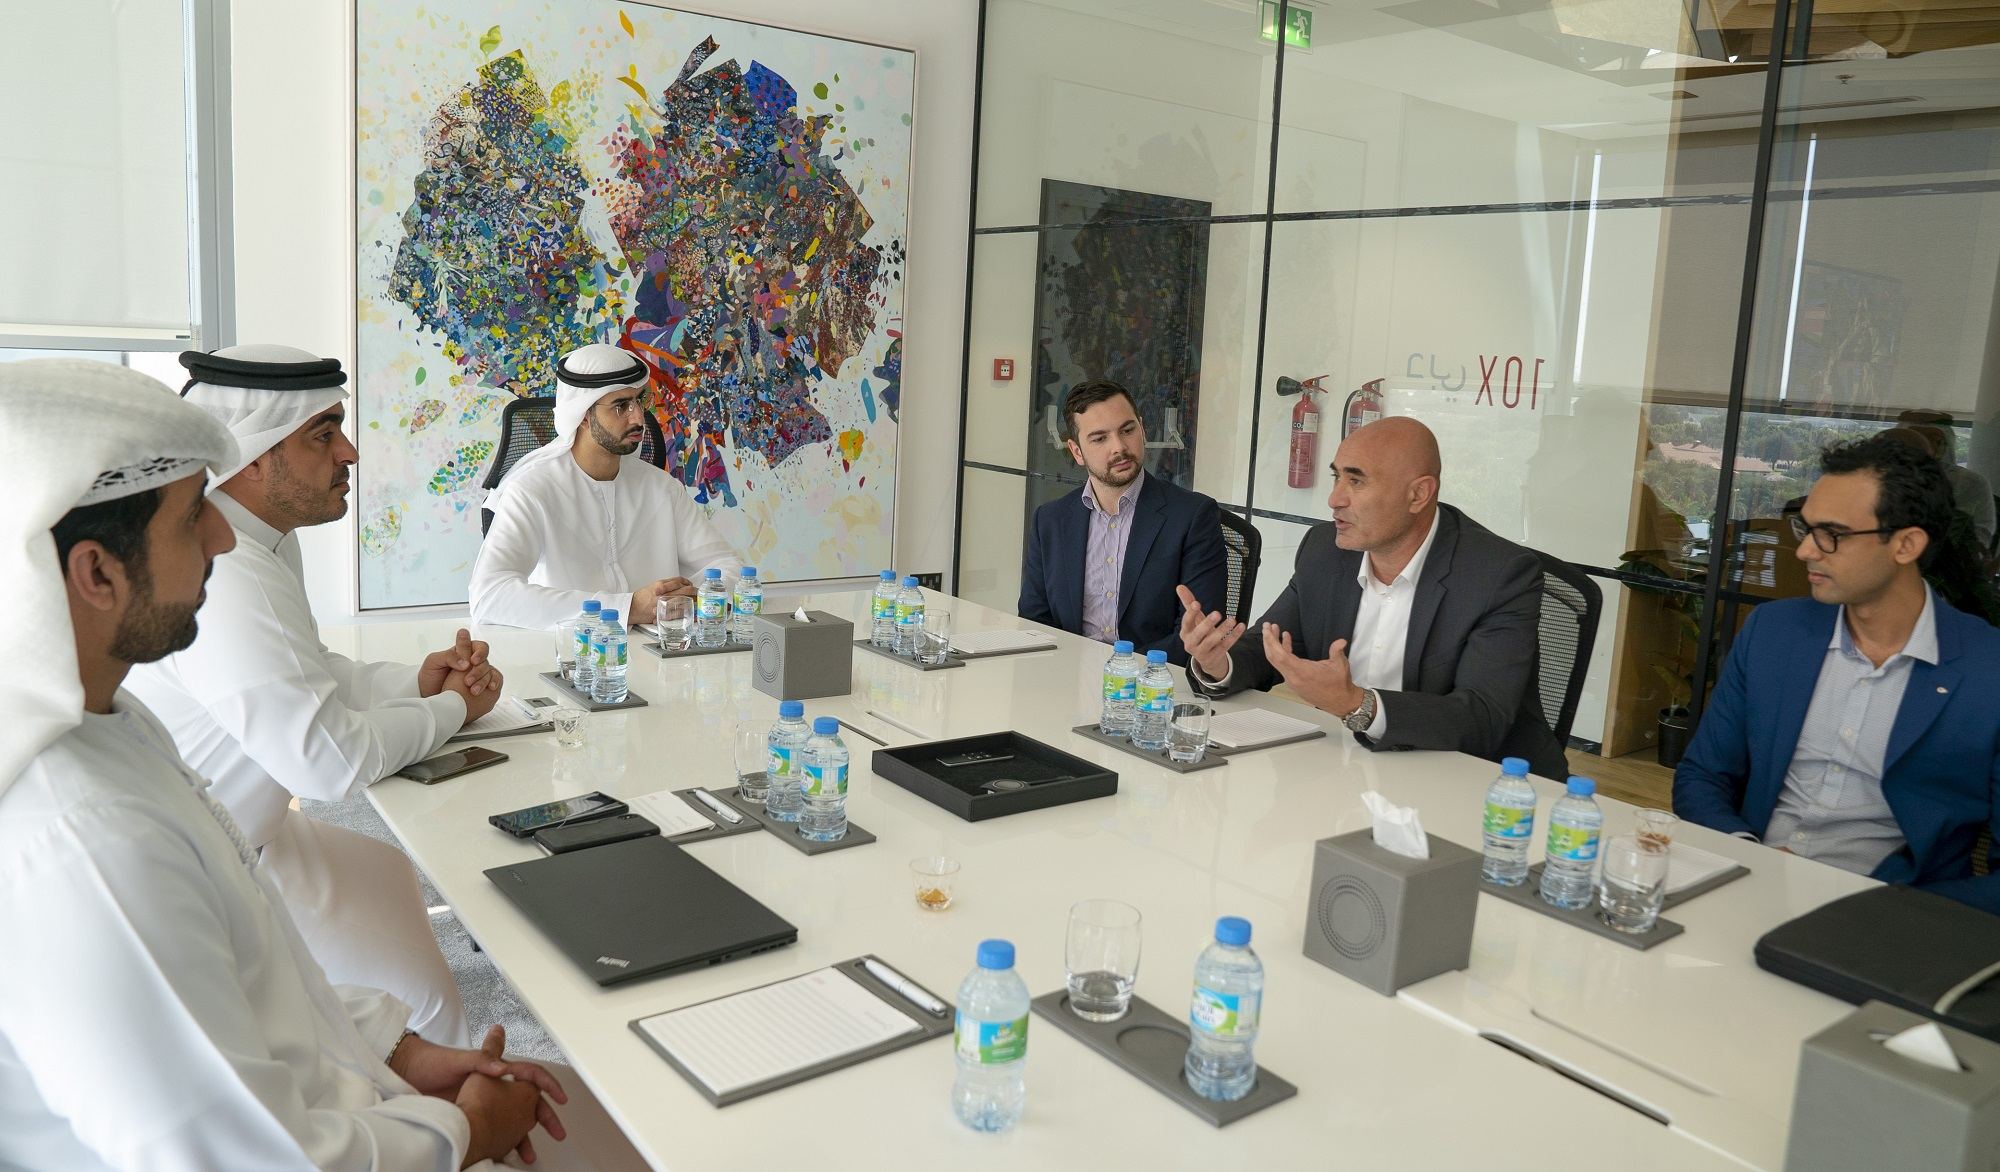 dubai future council on artificial intelligence holds its first meeting  3